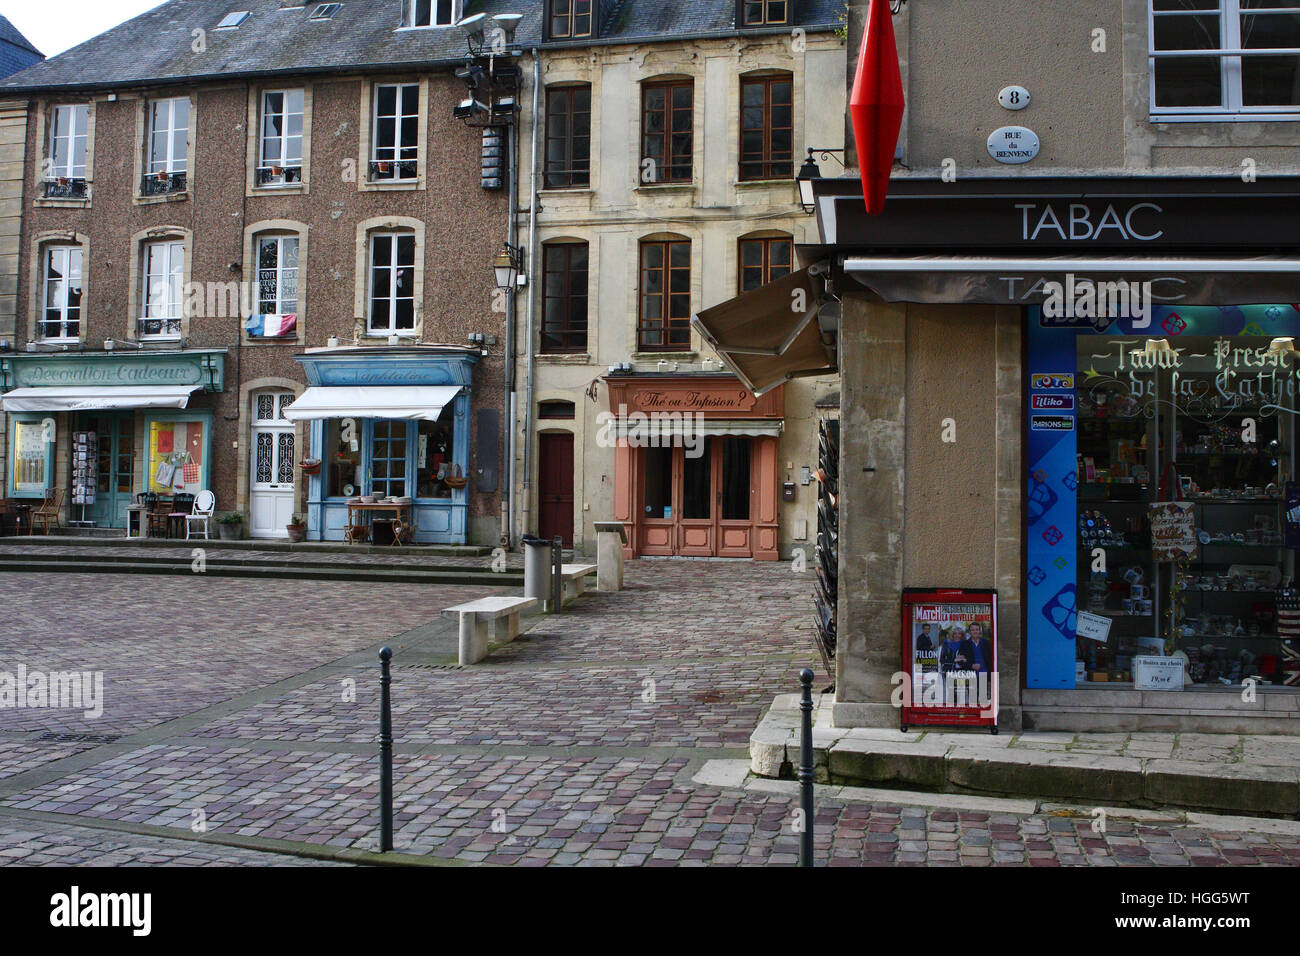 A view of commercial buildings in Bayeux, Normandy, France. Stock Photo